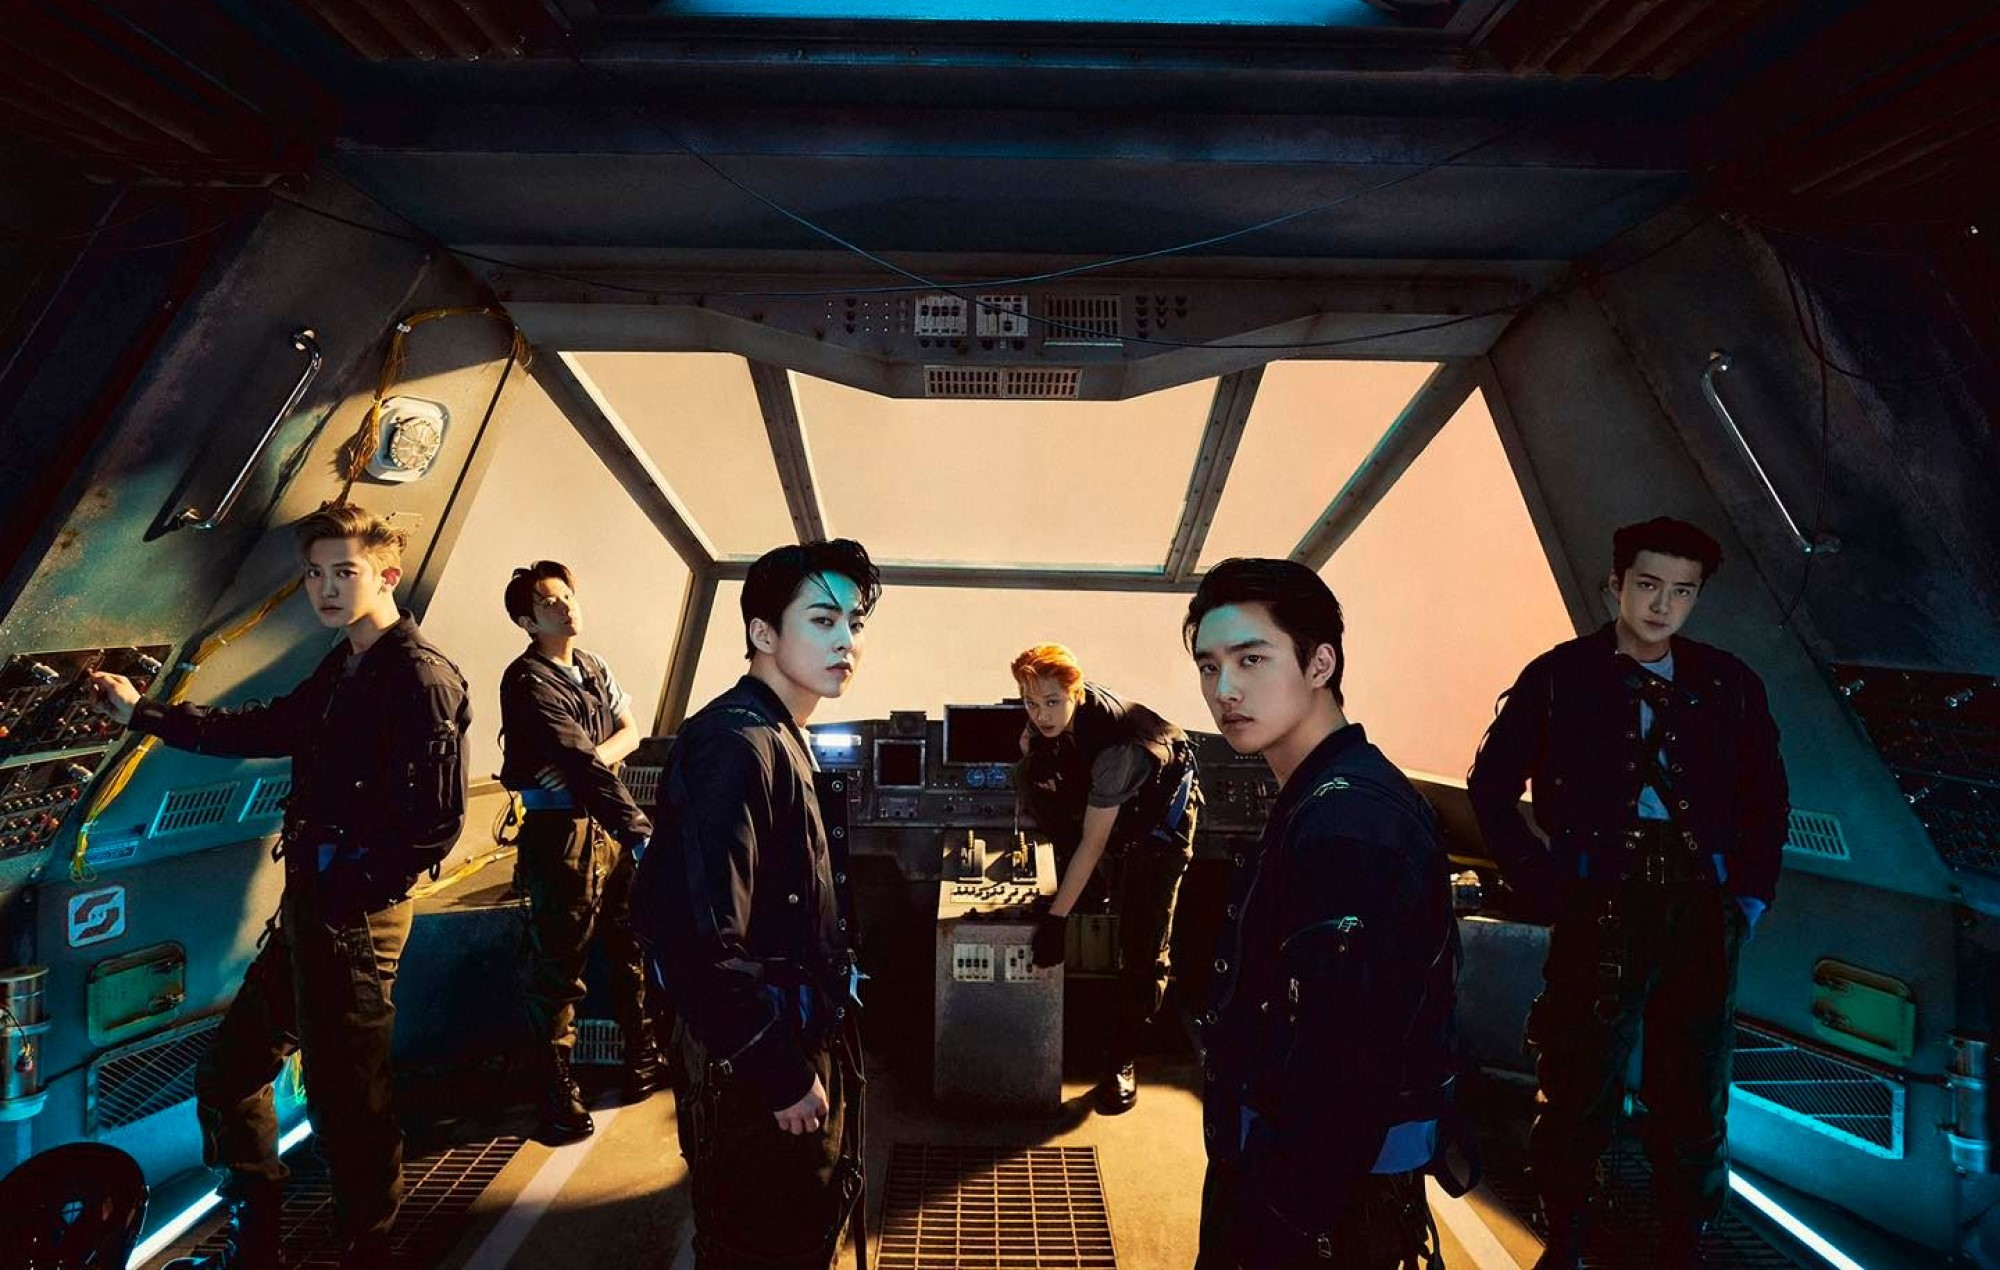 exo don't fight the feeling review